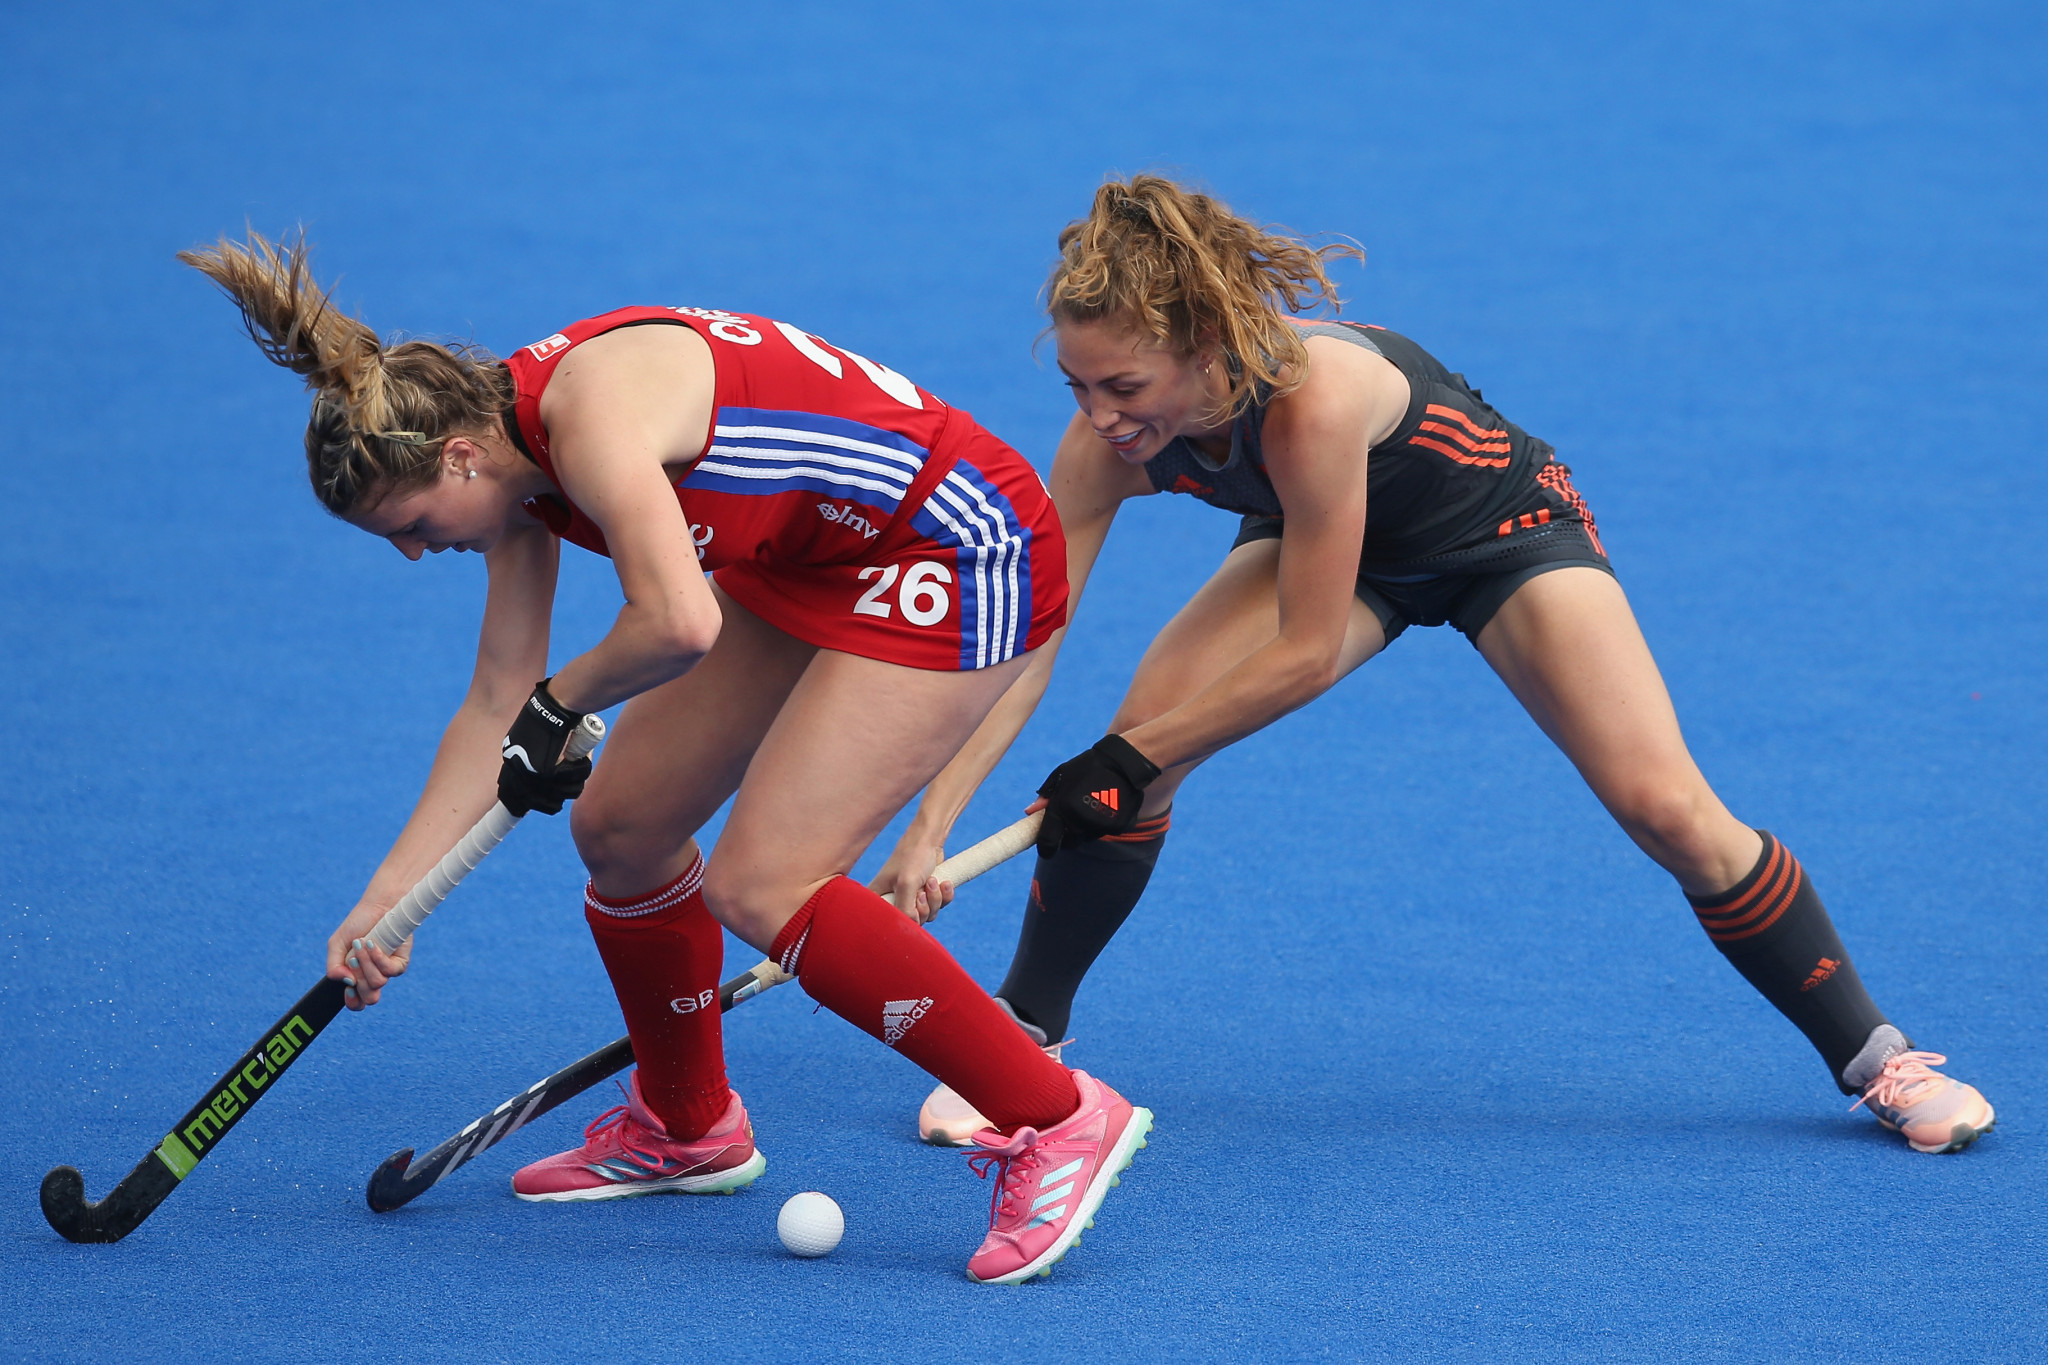 The European Hockey Federation has made gender equality a key goal ©Getty Images